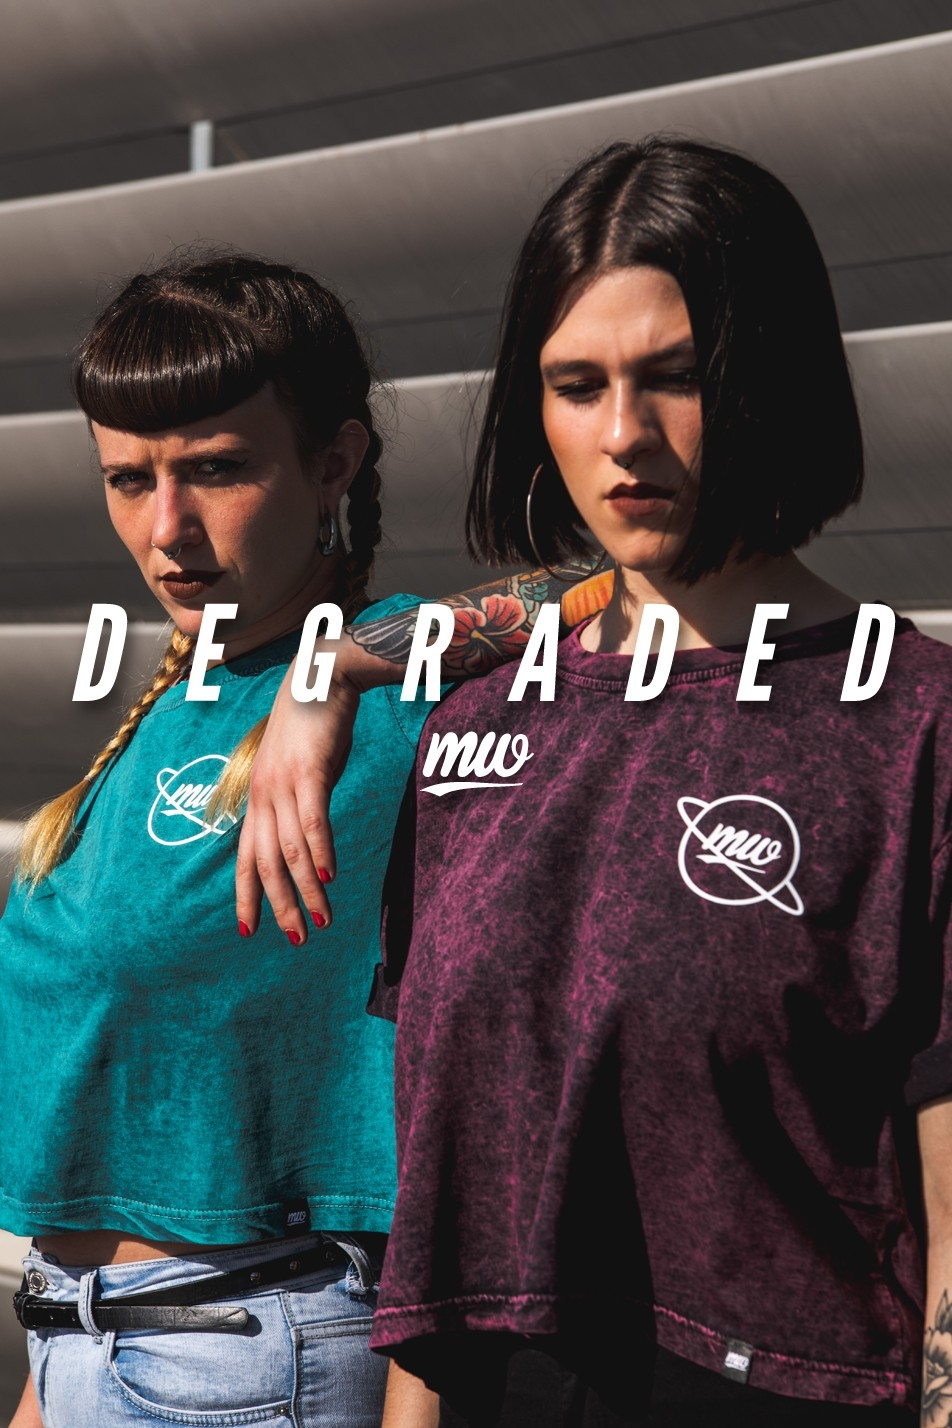 DEGRADED TEE